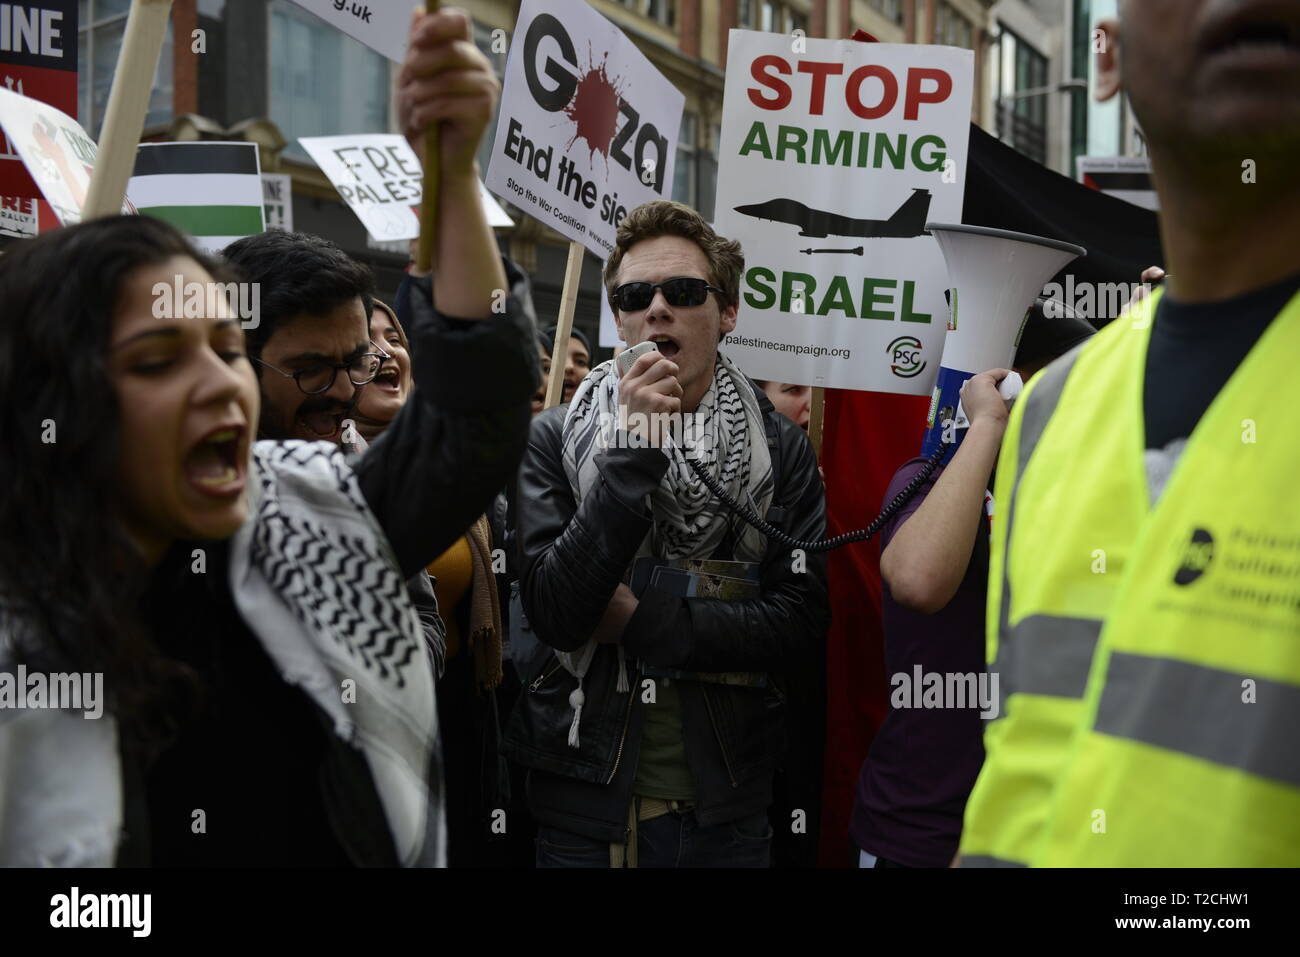 London, Greater London, UK. 30th Mar, 2019. Protester are seen chanting slogans during the Exist, Resist, Return Rally for Palestine in London.People gather outside the Israeli embassy in London to demonstrate against the Israeli government, and to demand respect for Palestinians' fundamental rights to exist, resist and return. Palestinians are calling for global protests to support their right to come back to their villages. Rally was organized by Palestine Solidarity Campaign, Stop the War Coalition, Palestinian Forum in Britain, Friends of Al- Aqsa, and Muslim Association o - Stock Image